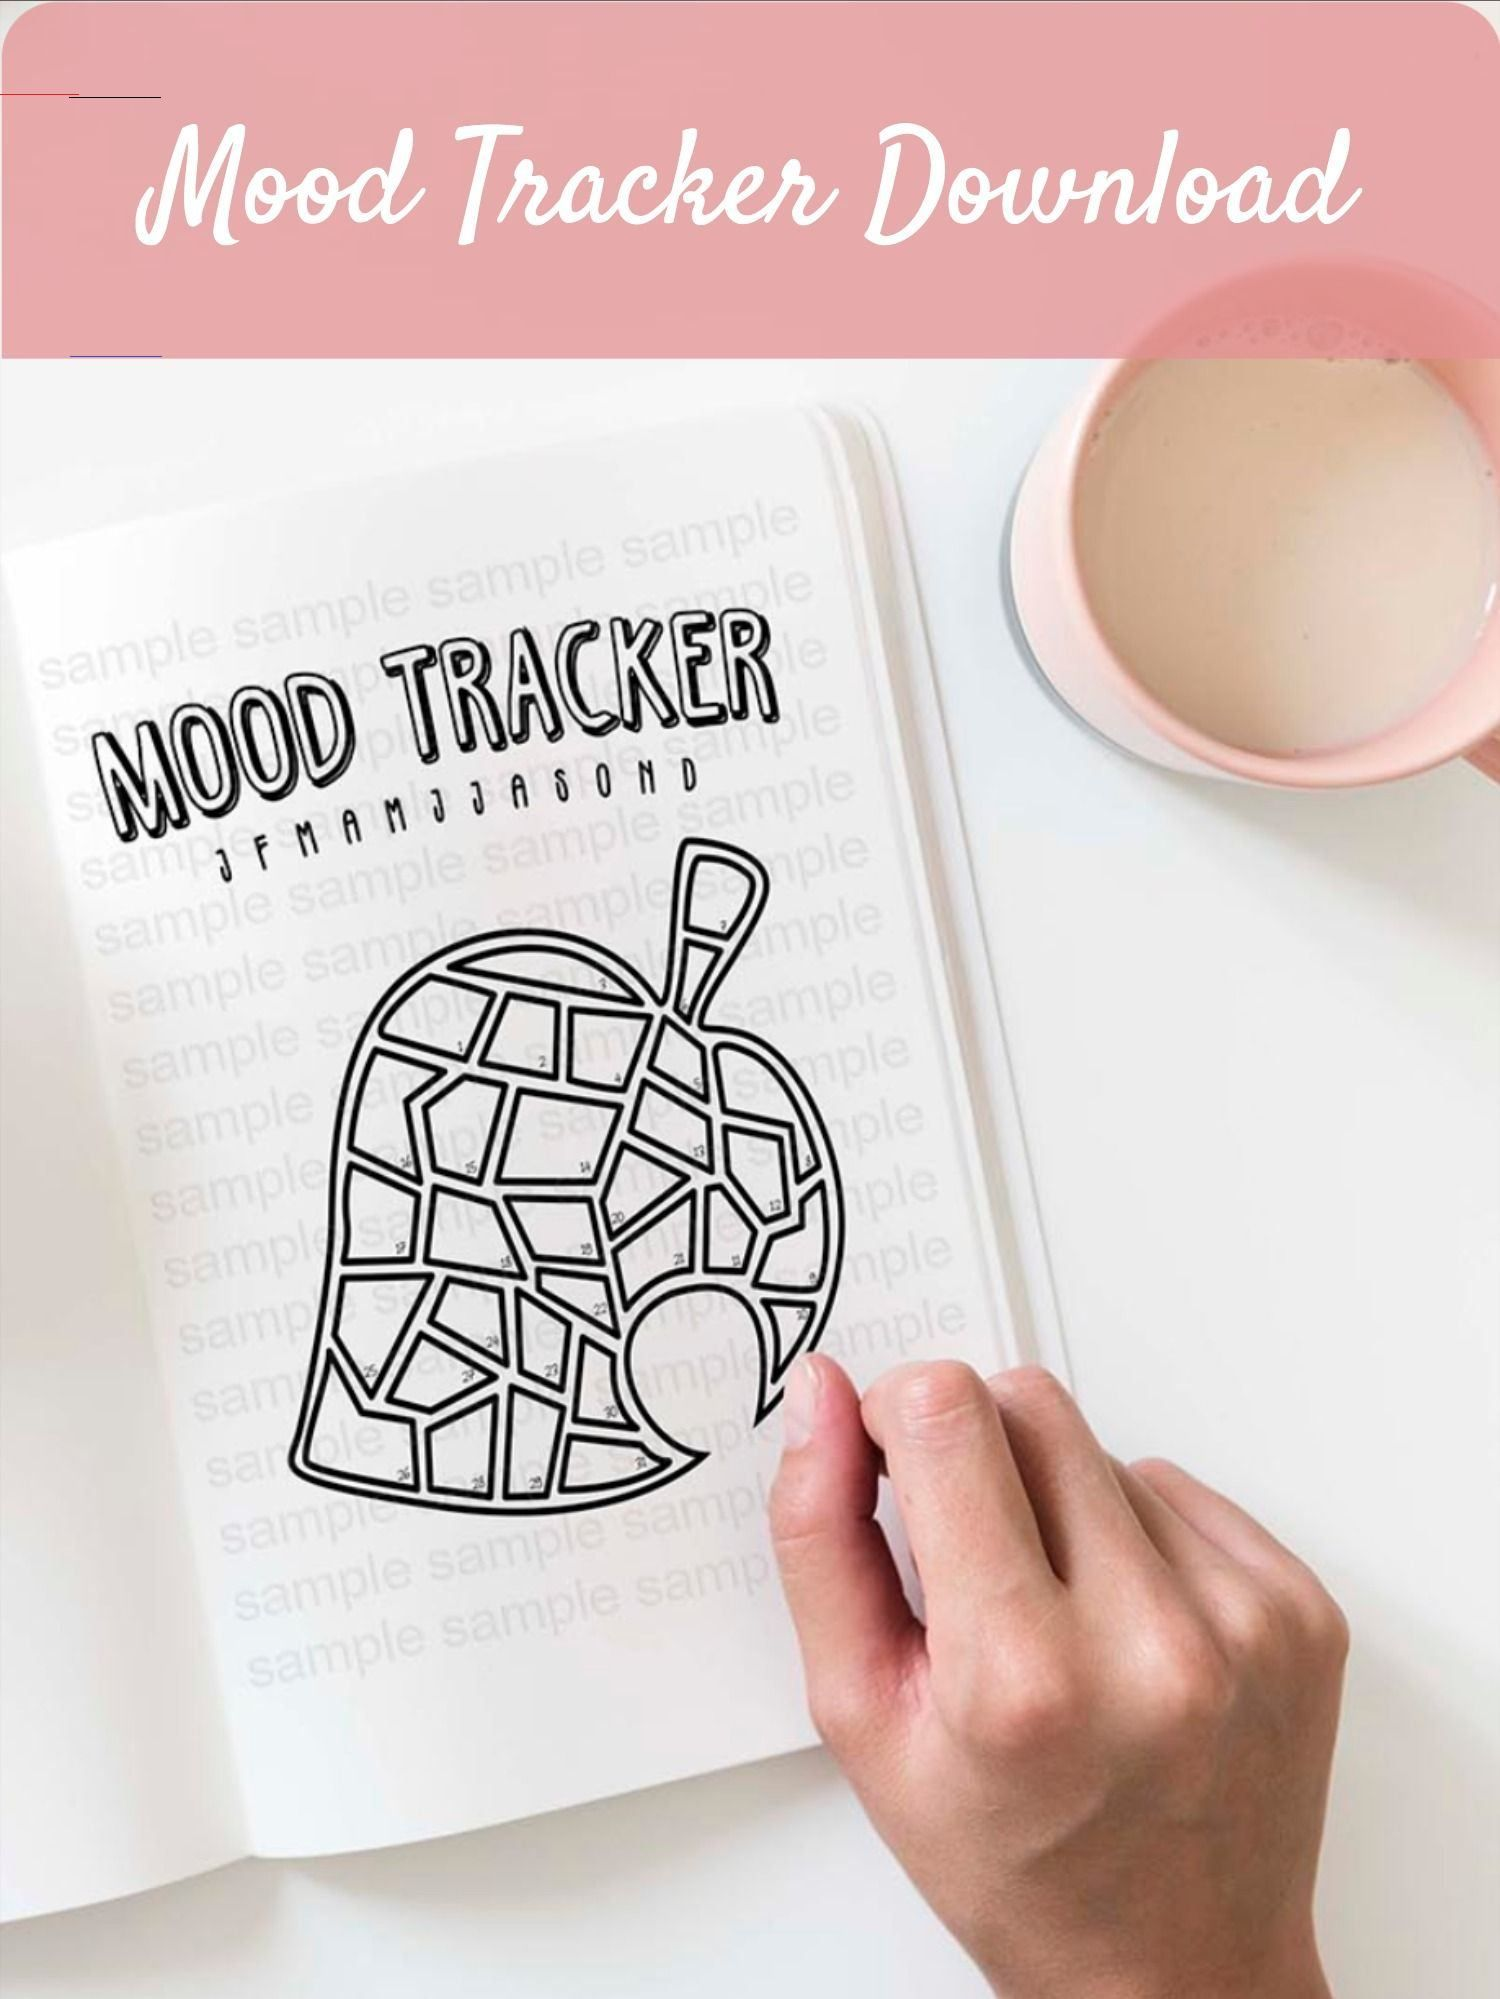 March Mood Tracker Printable Download examplesofgoals